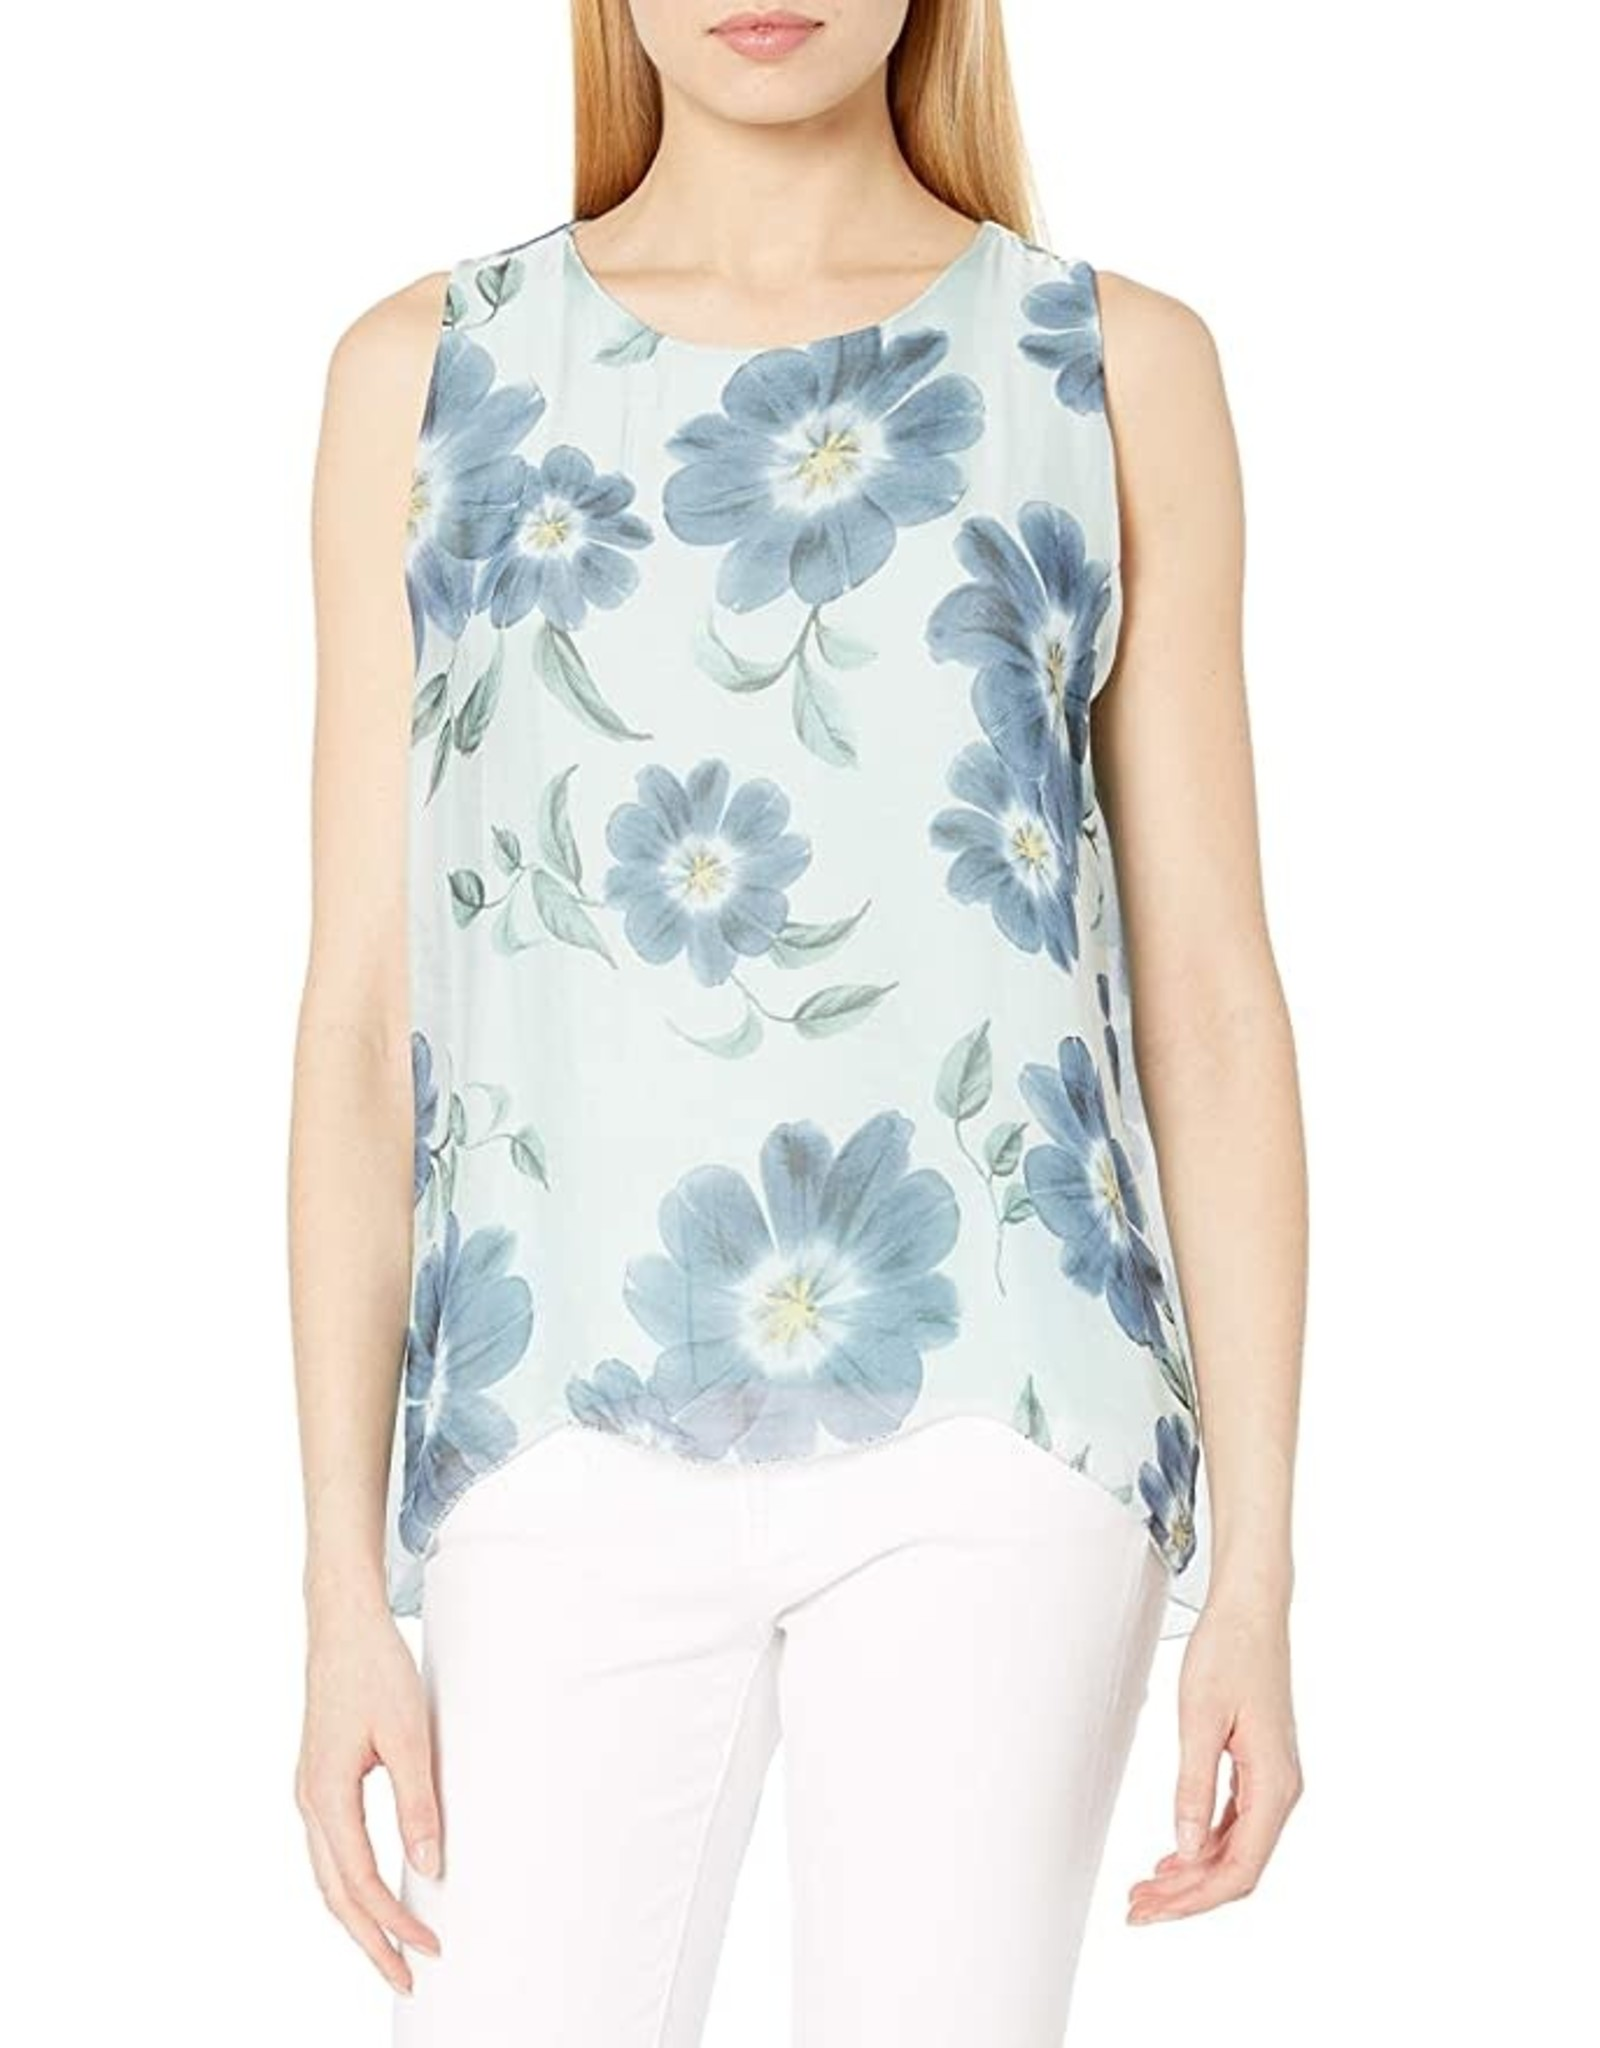 M Made In Italy Mint Floral Sleevless Top